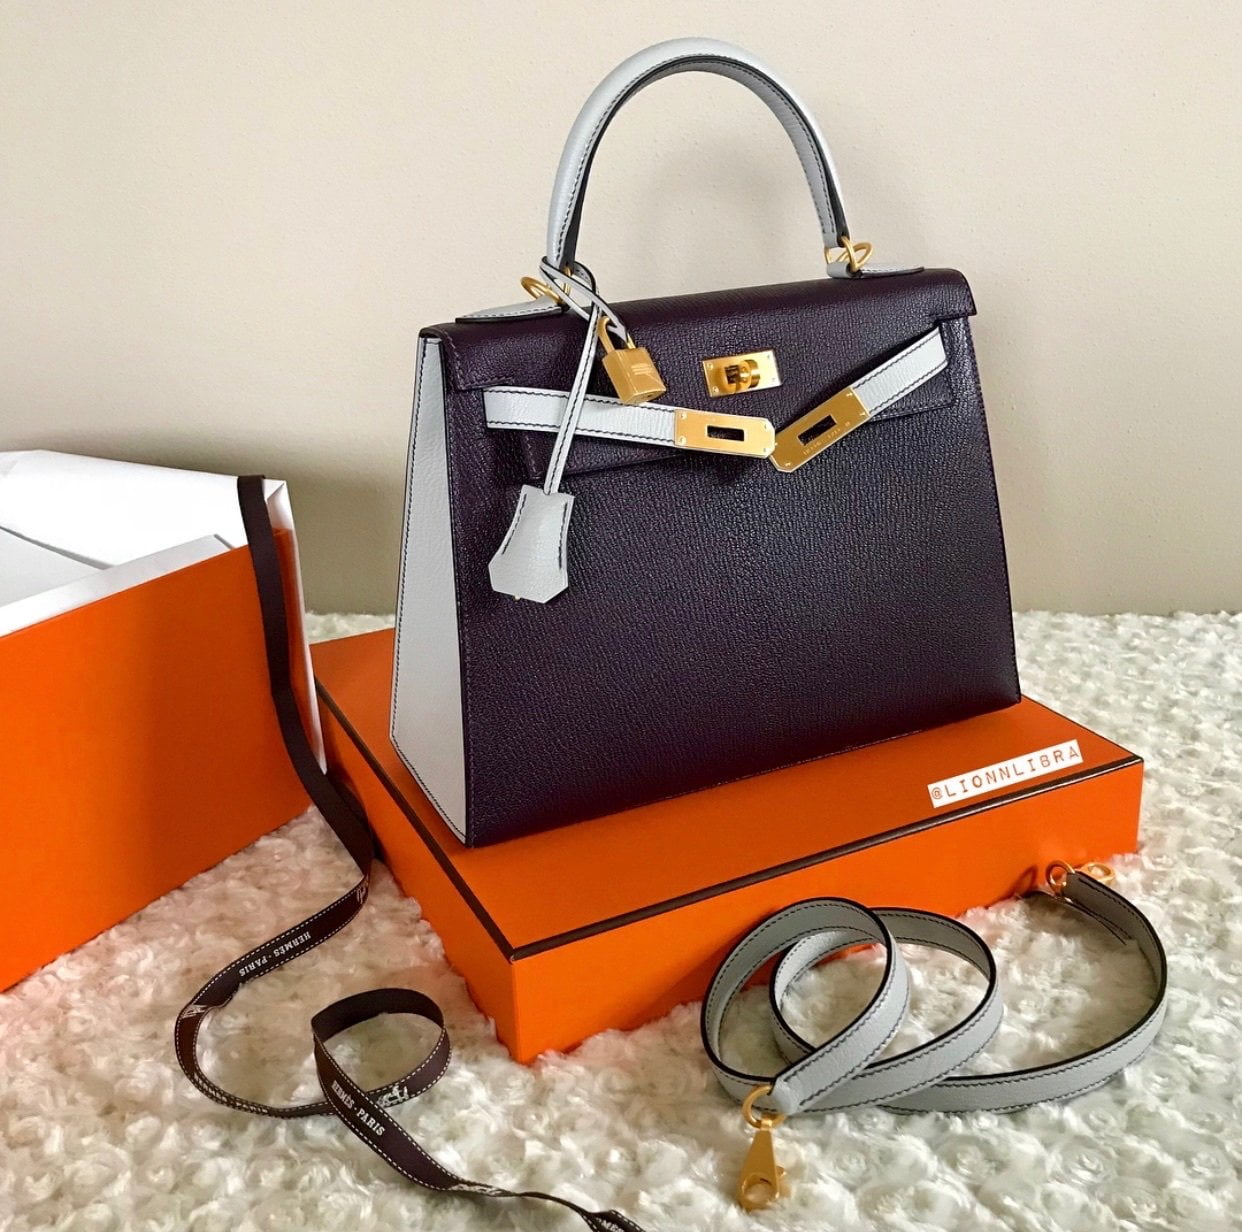 722cf6b73516 5 Facts You Didn t Know About Hermès Special Orders - PurseBop